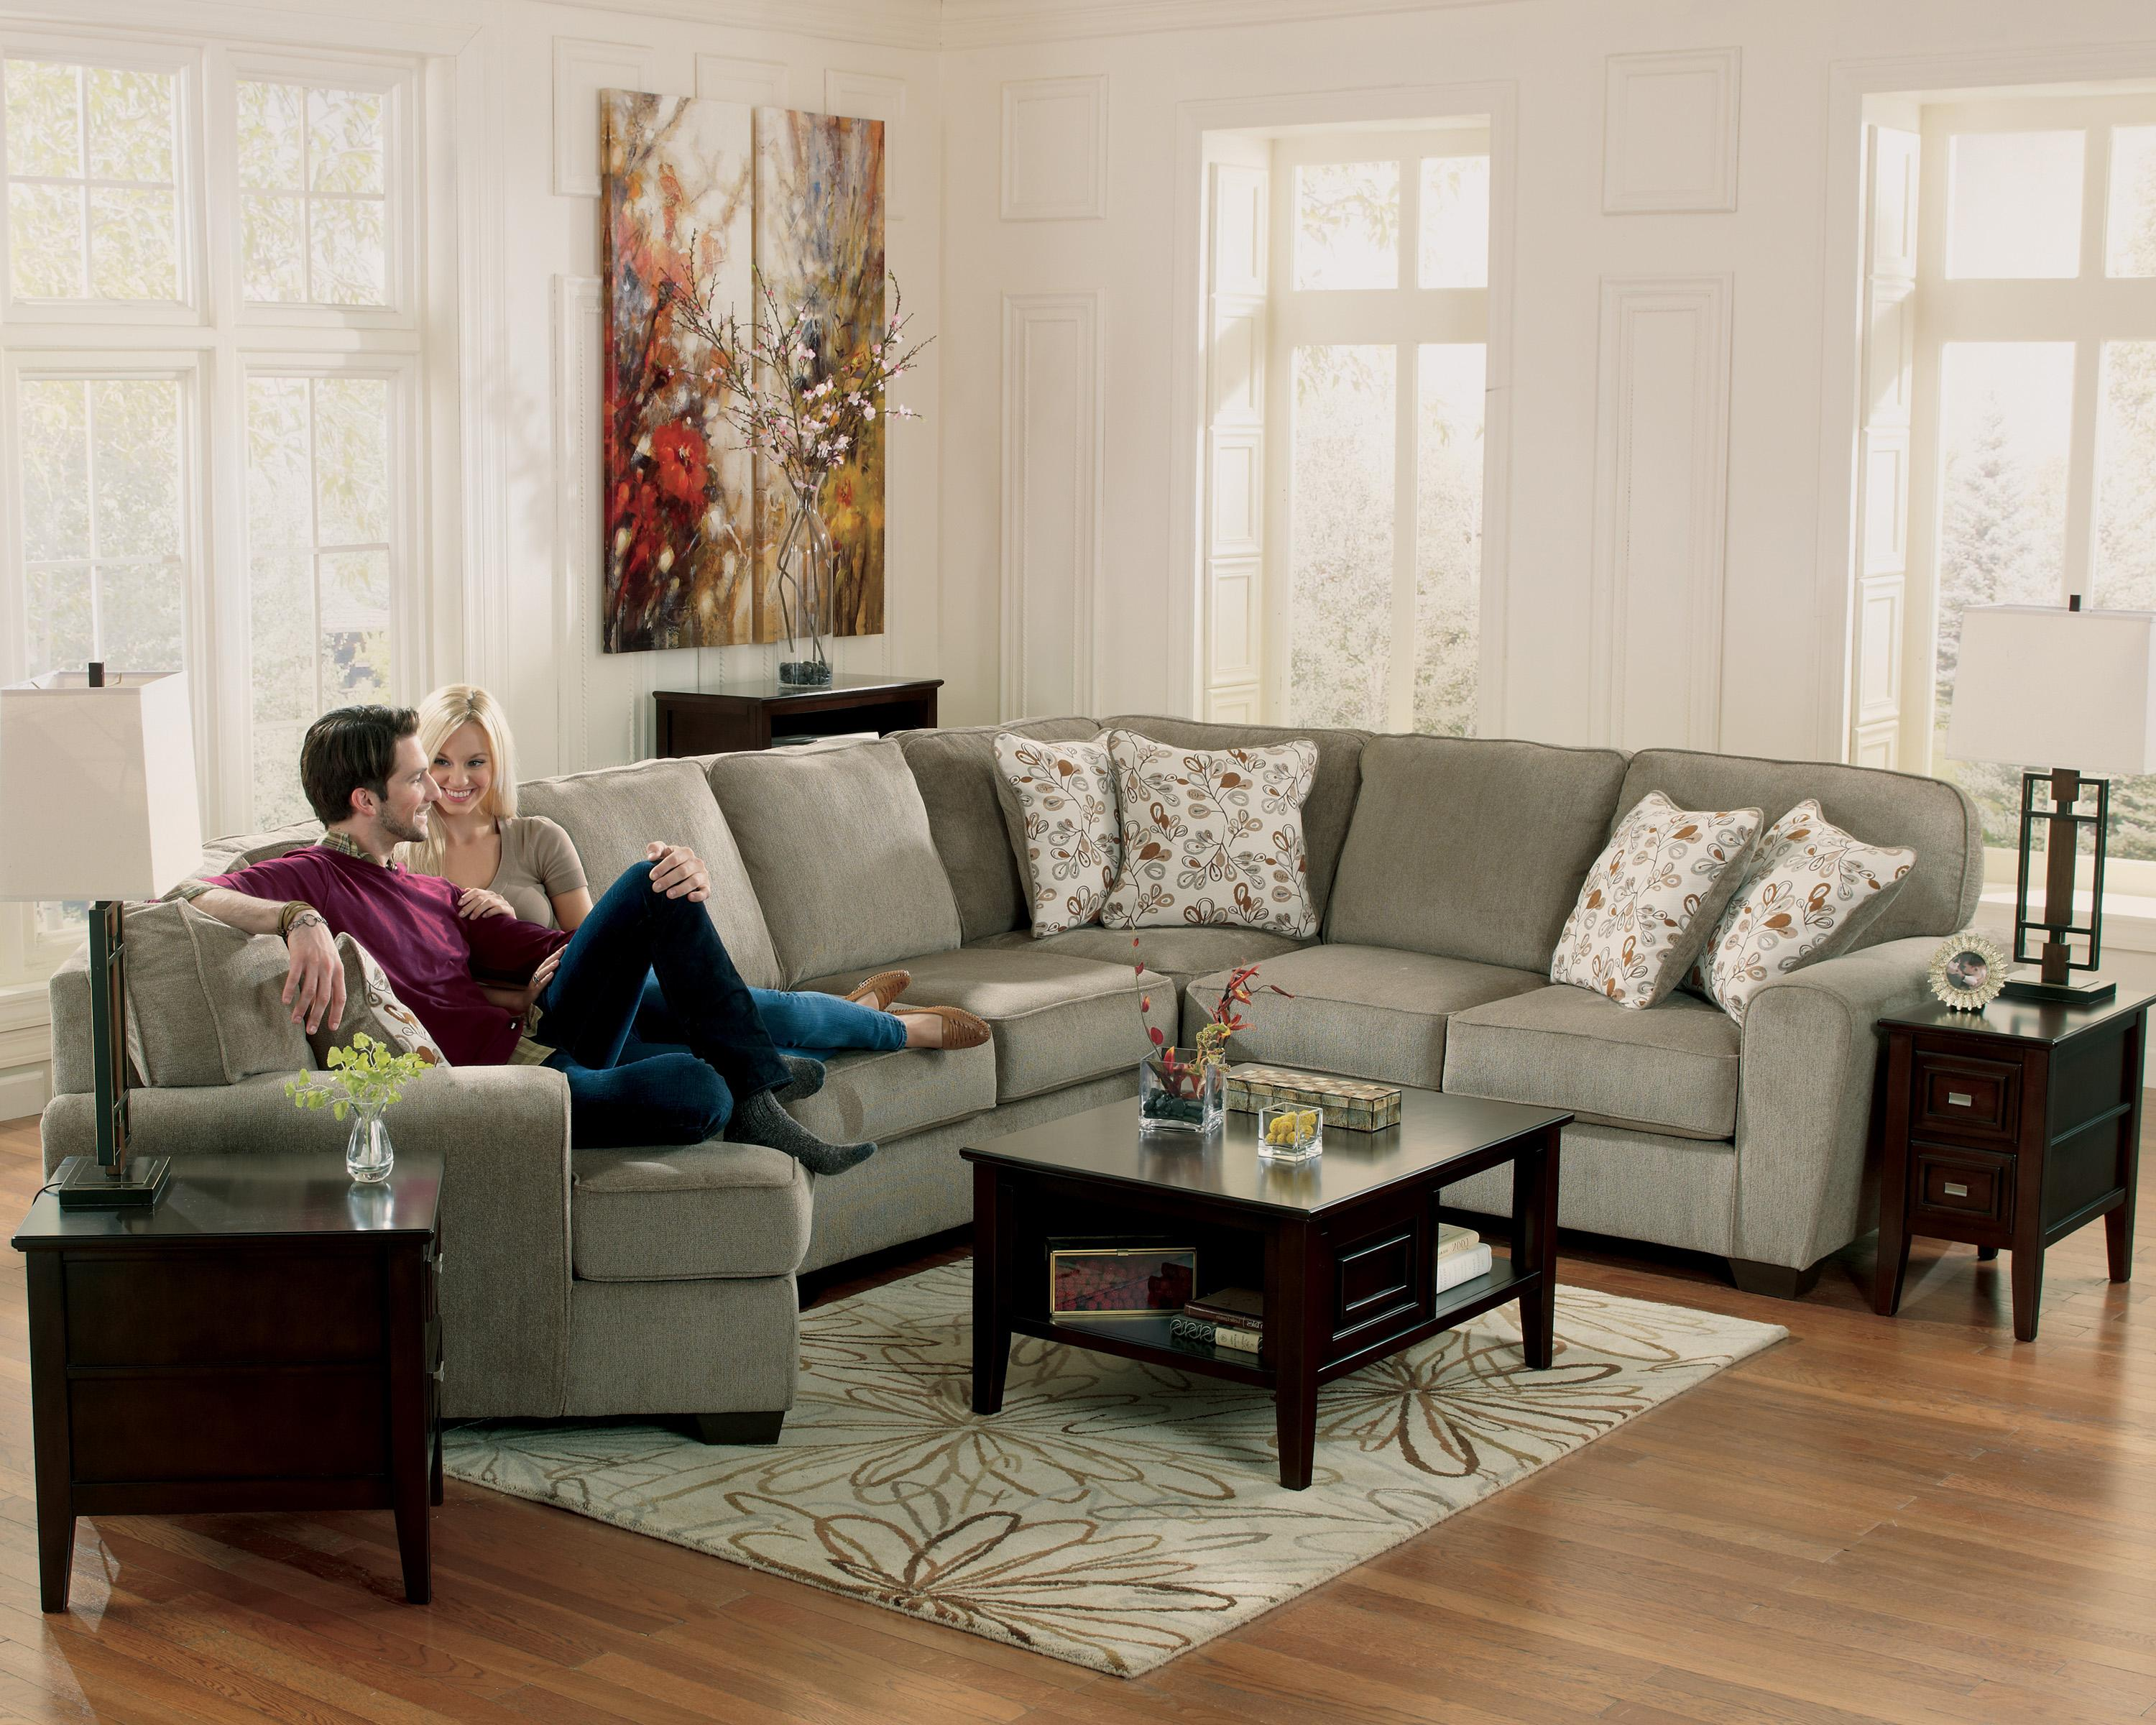 Ashley Furniture Patola Park Patina 4 Piece Small Sectional With Left Cuddler Fashion